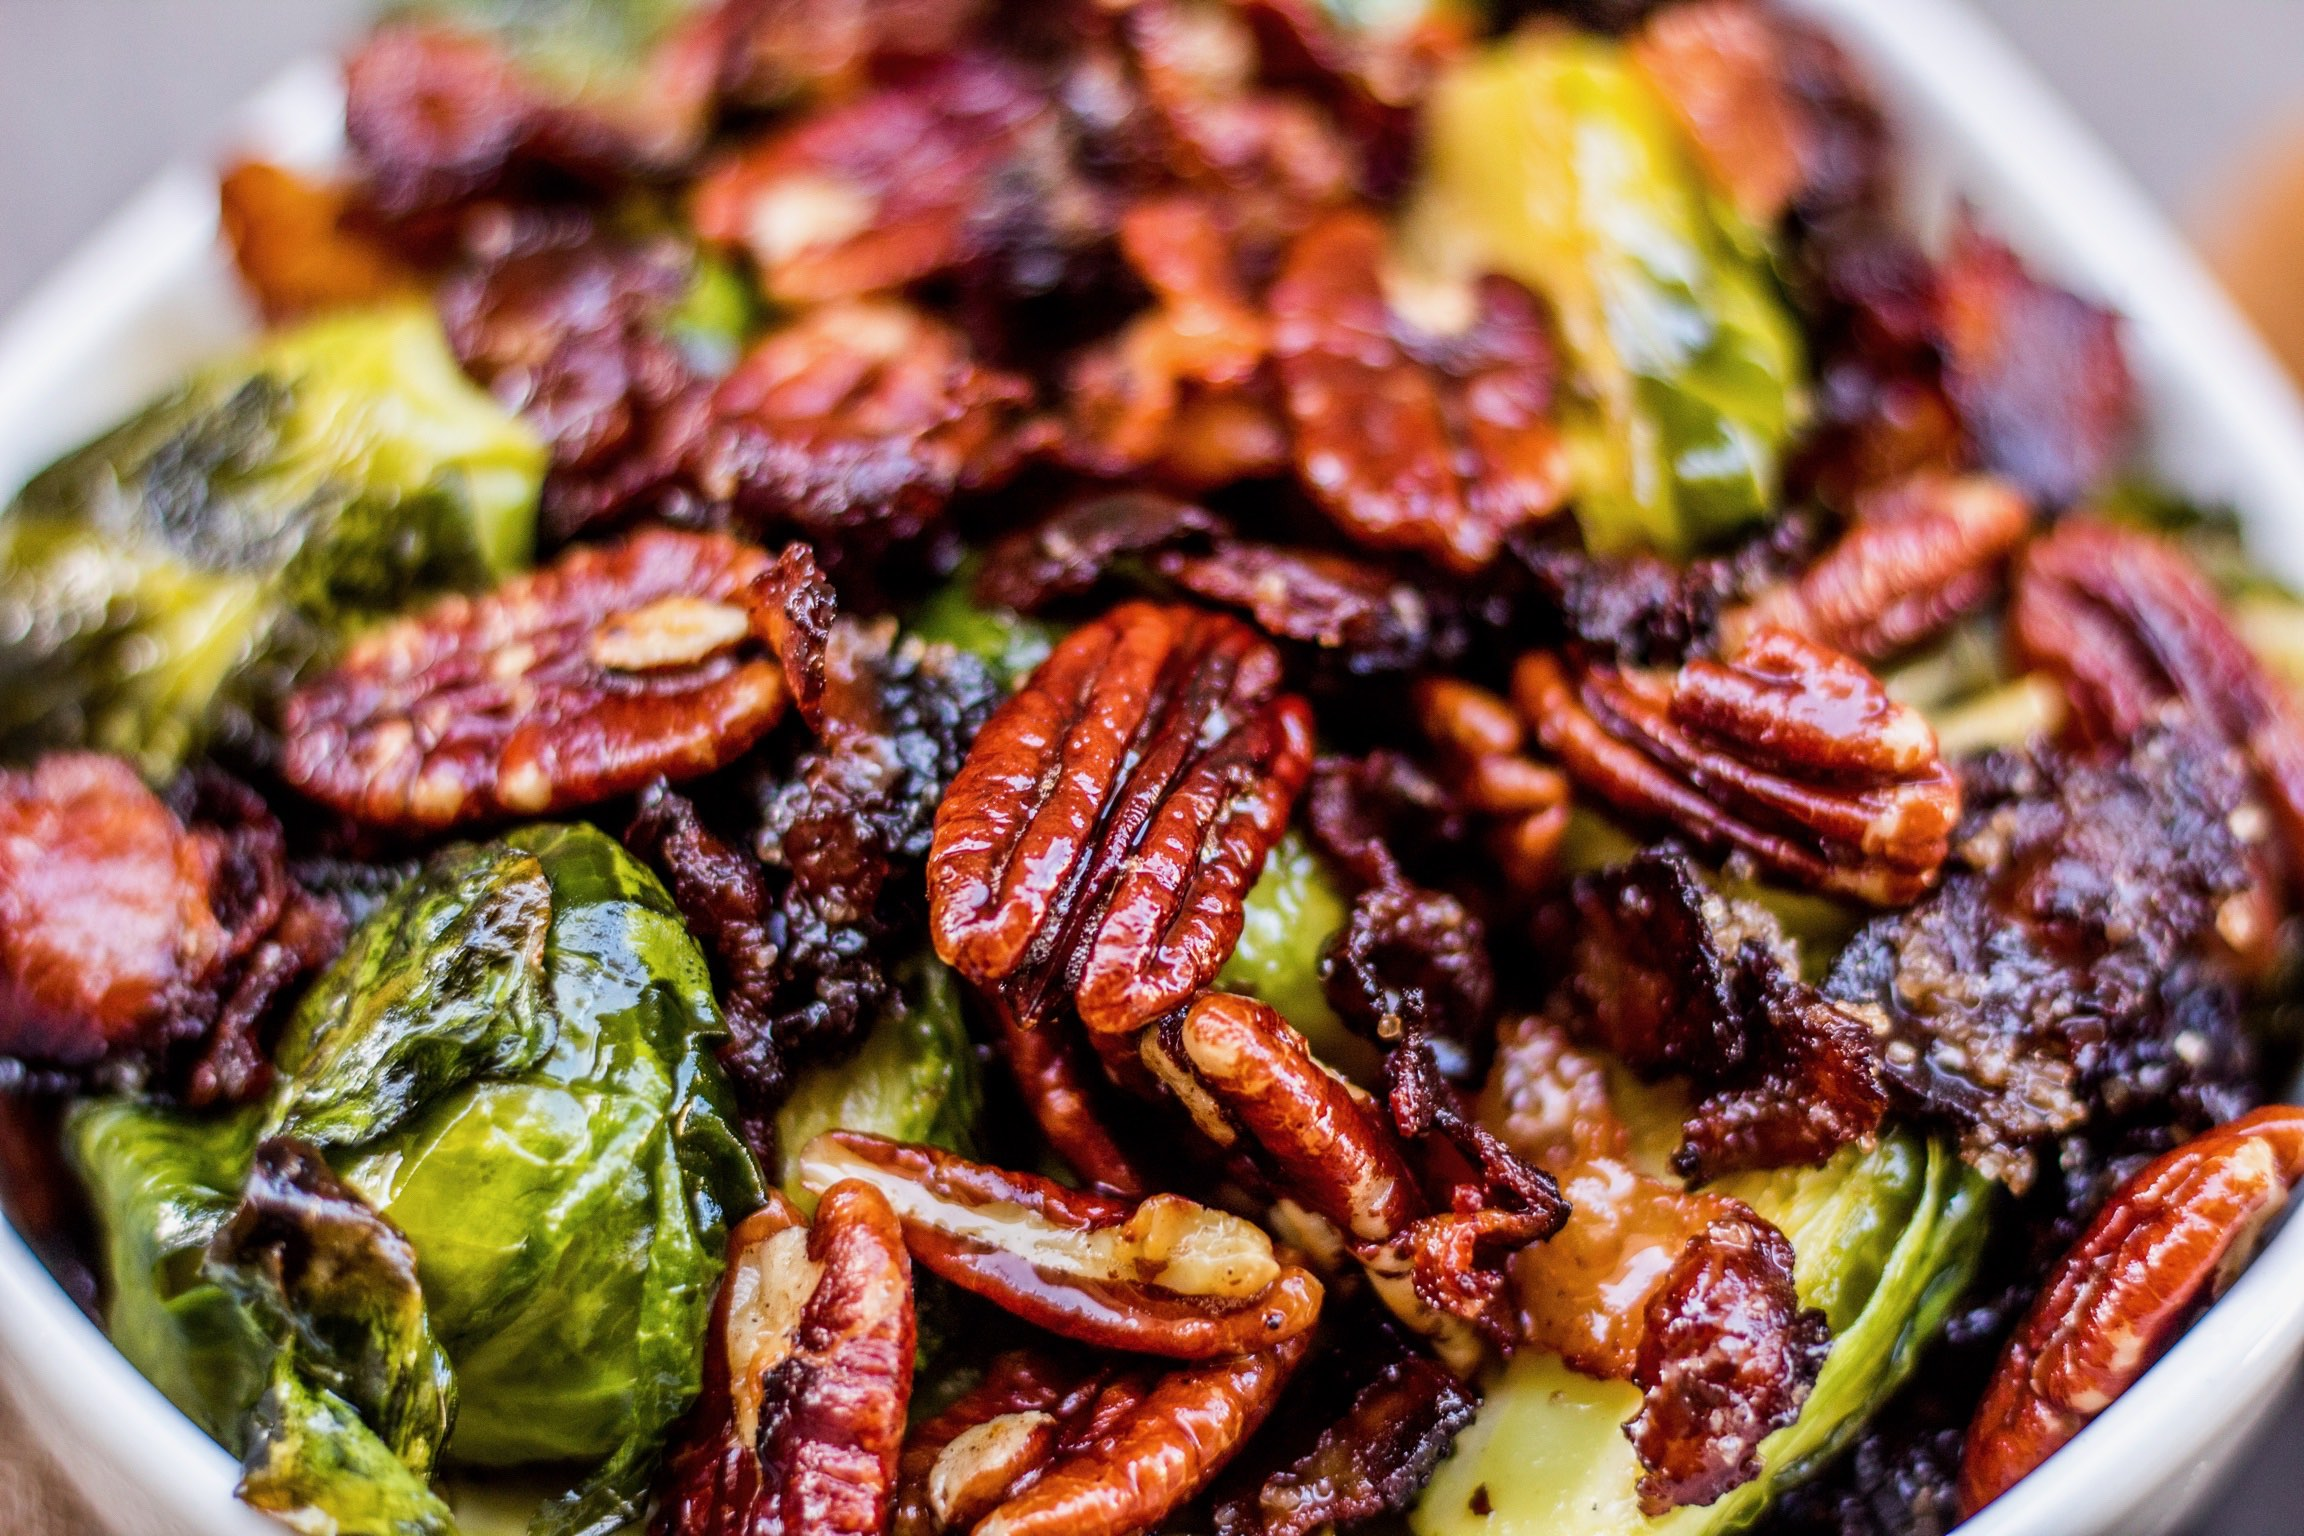 Brussel sprout and pecans